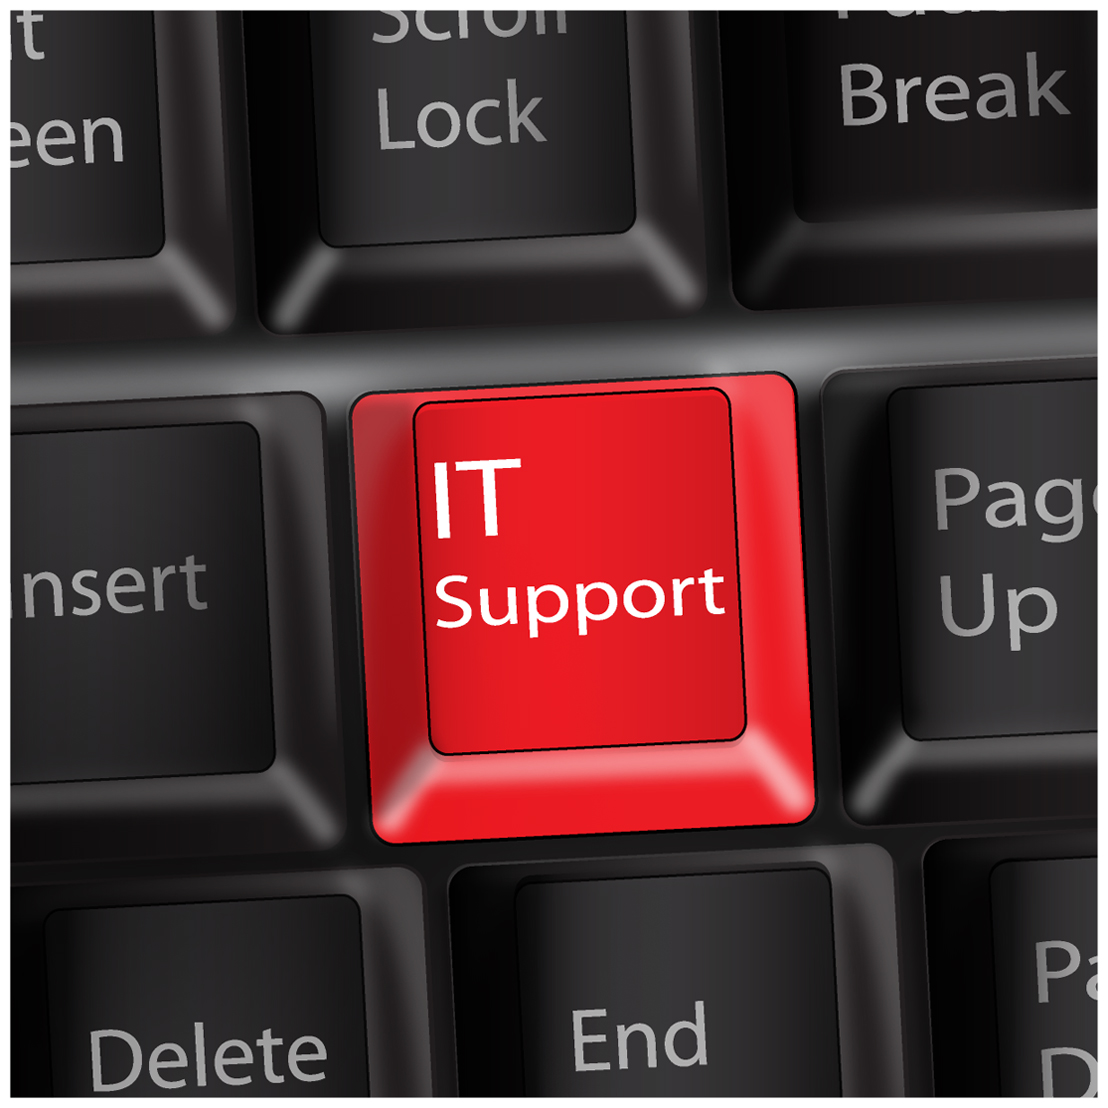 Annual It Support Contracts For Small Enterprises And